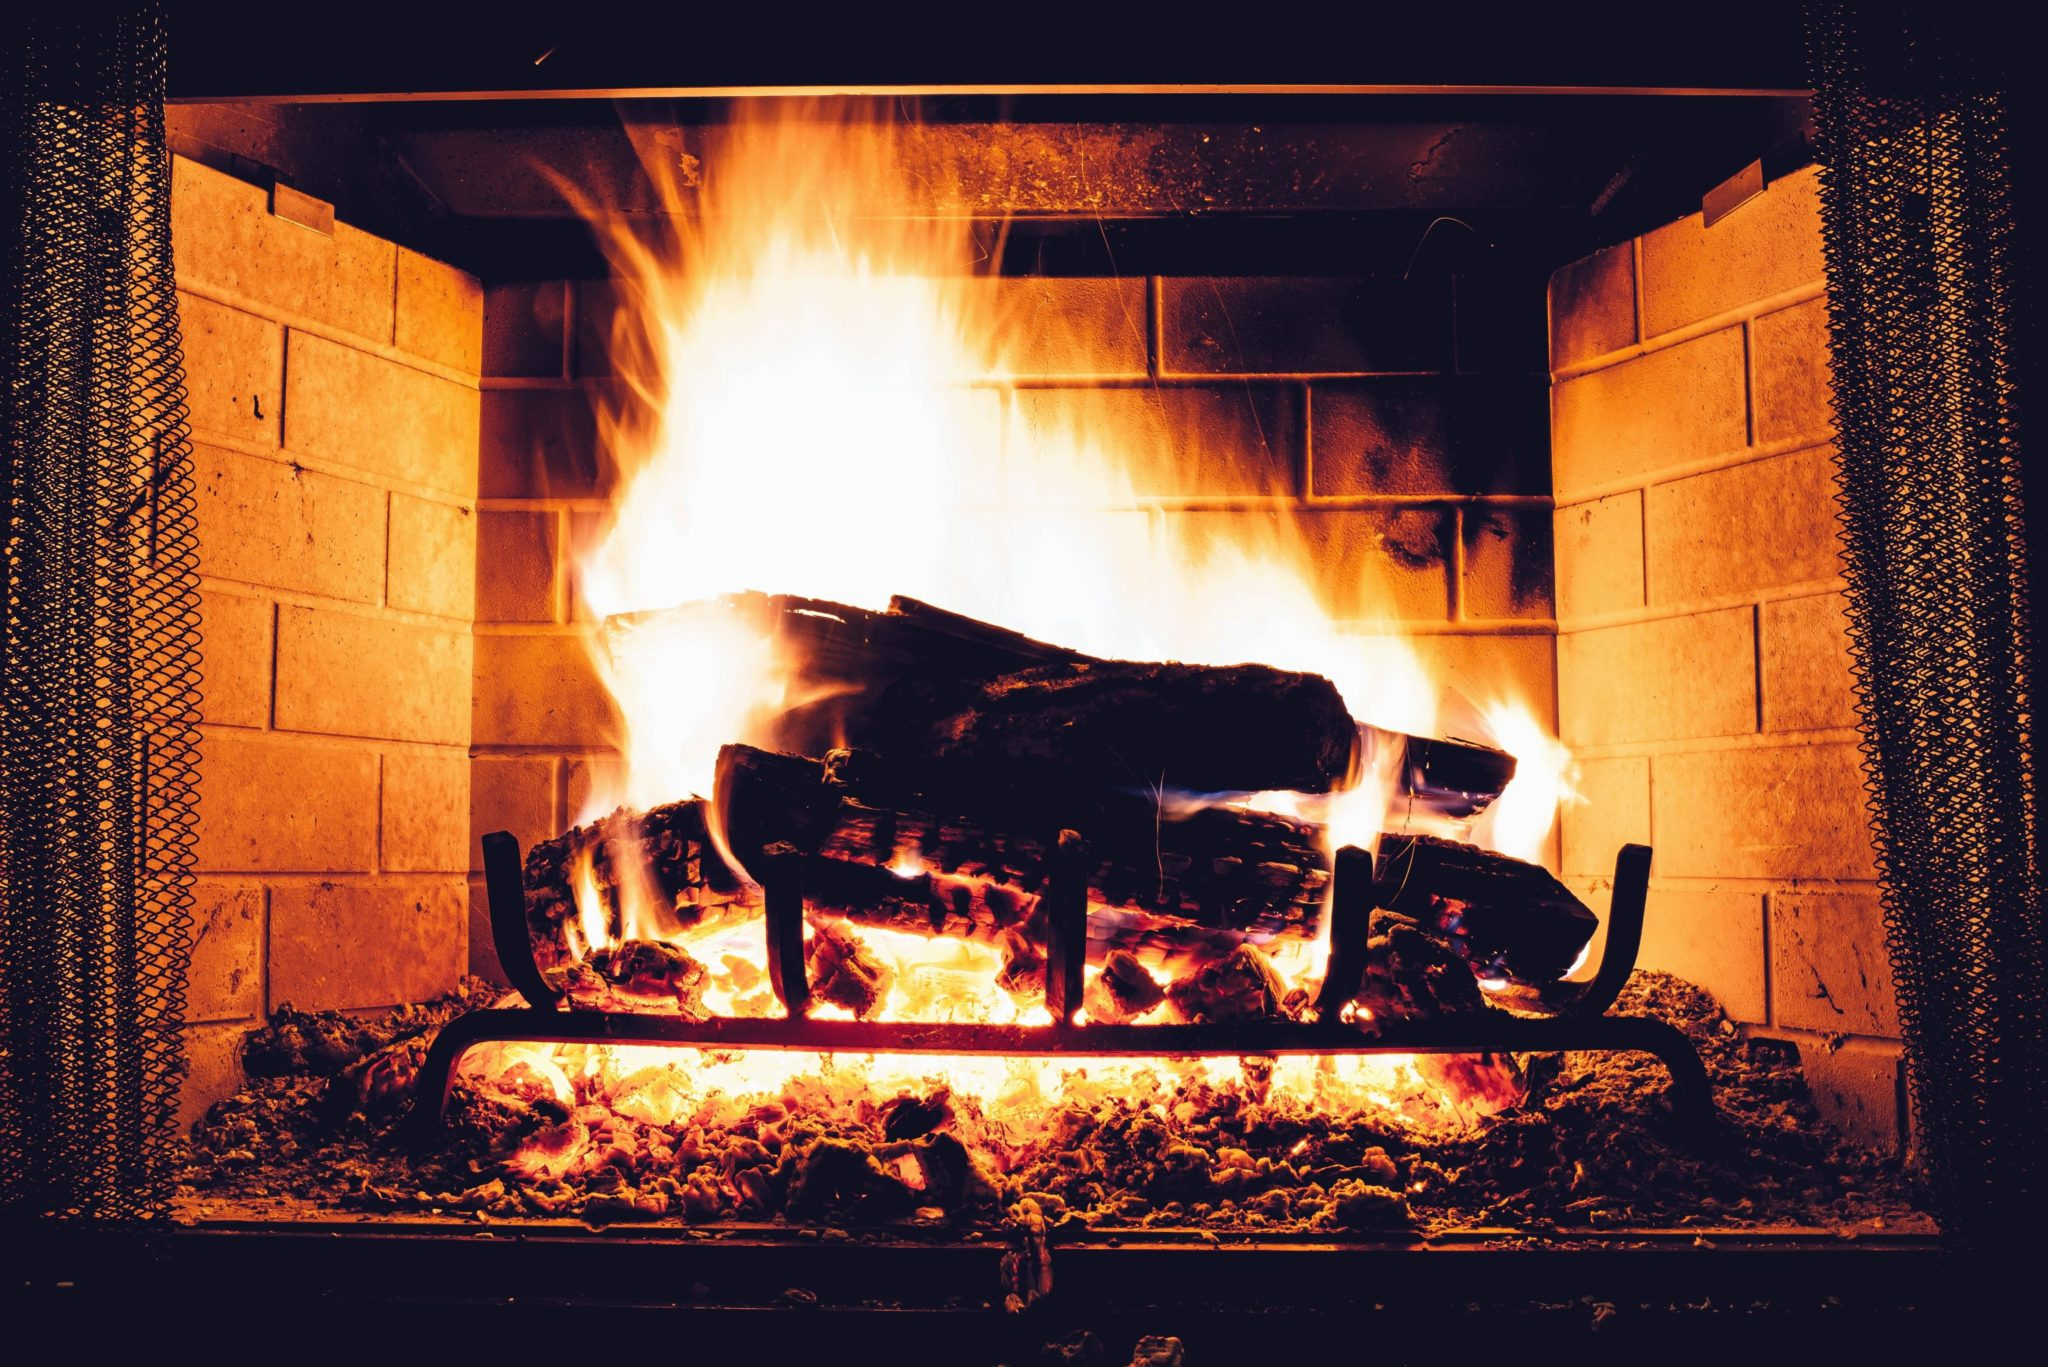 Winter home heating safety tips homeowner offers - Humo de chimenea ...